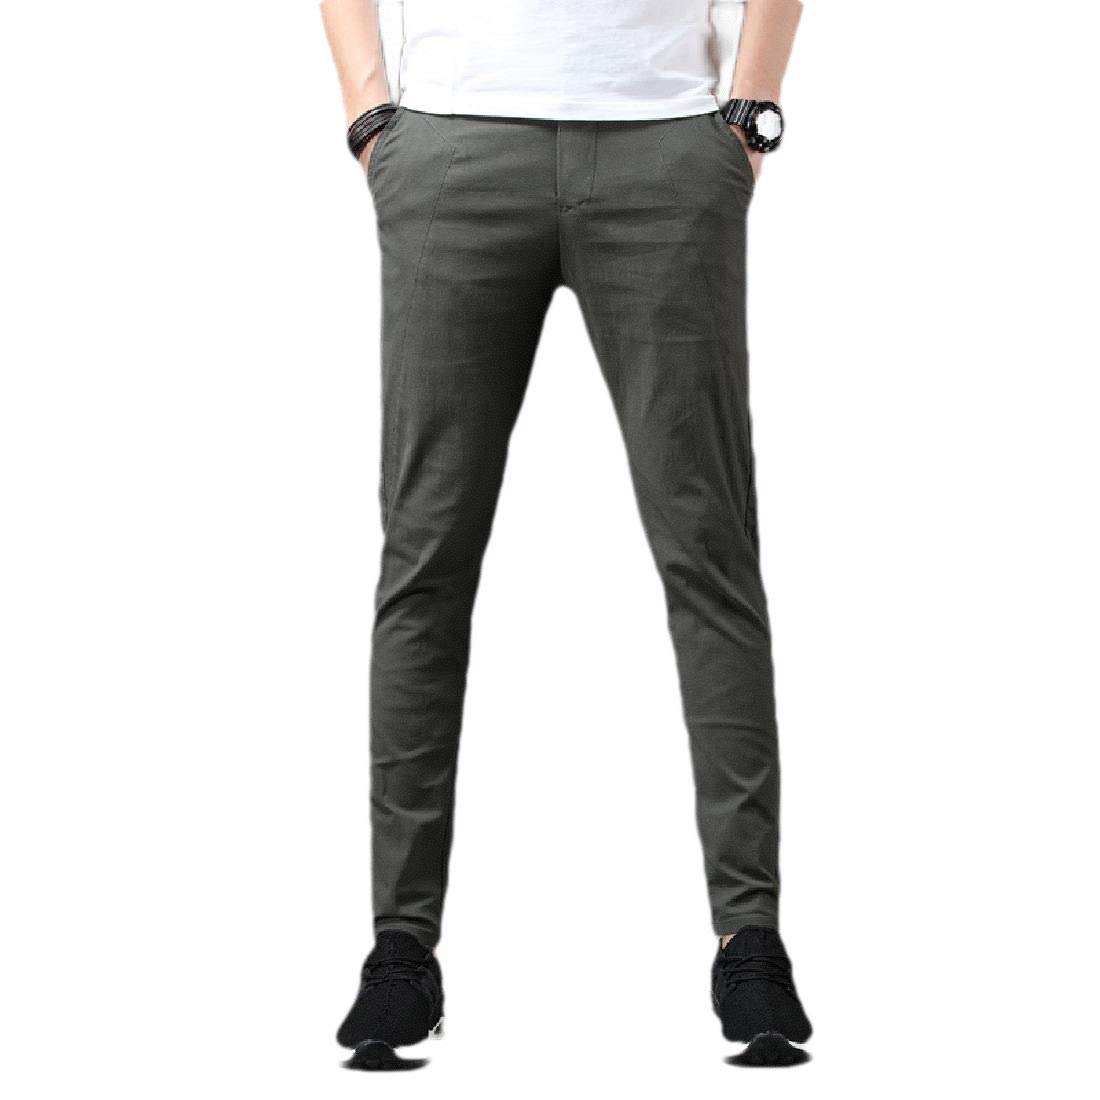 XiaoShop Men Slim Straight Leg No-Iron Athletic Fit Oceanside Trousers